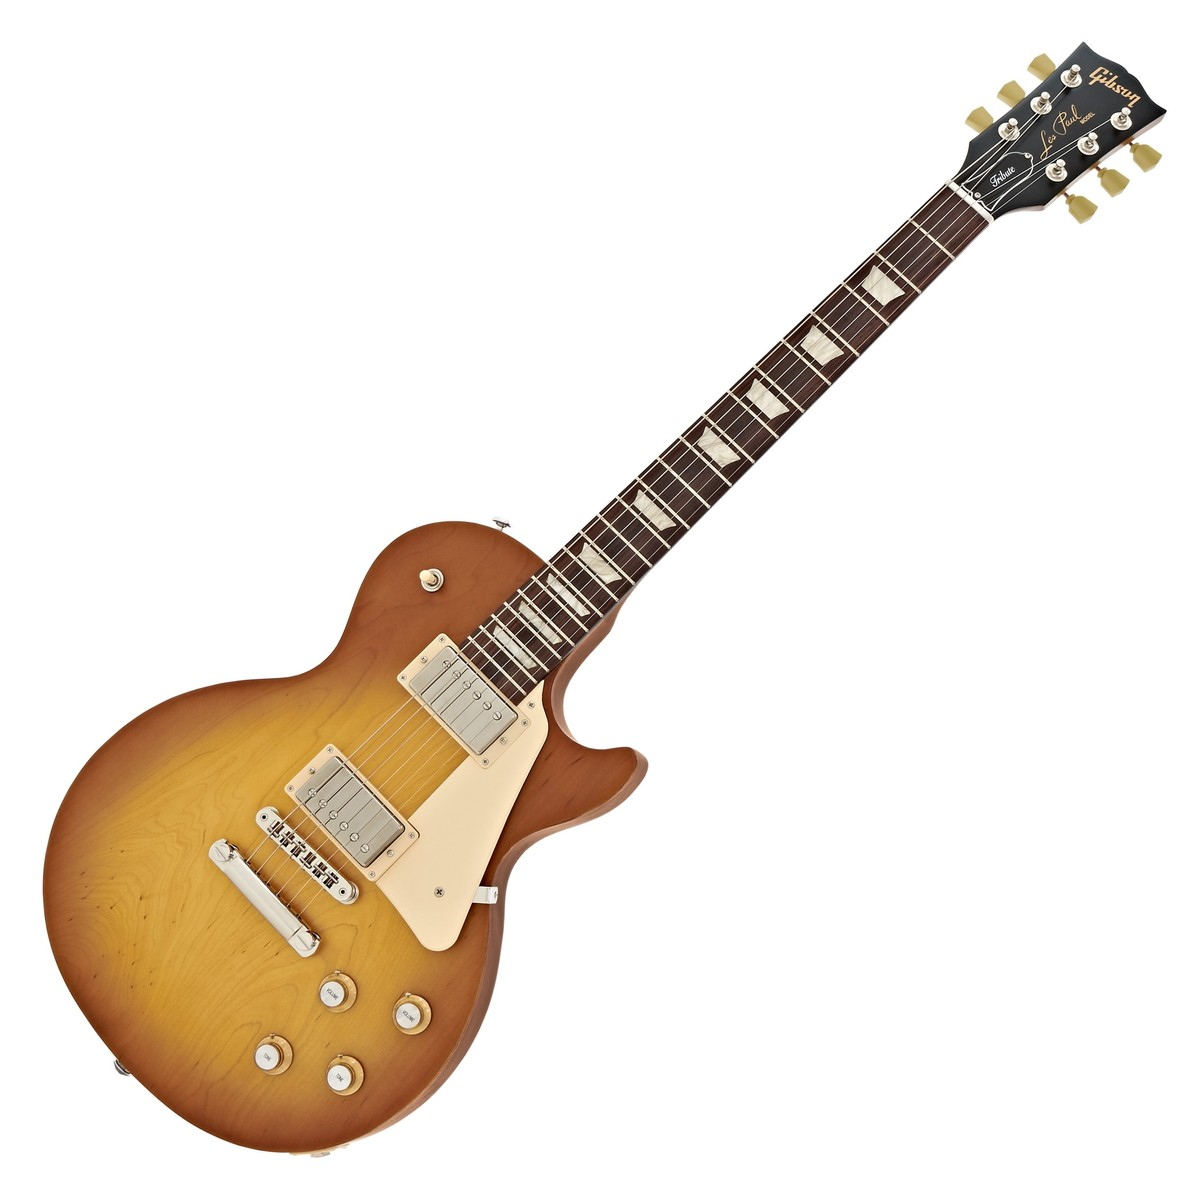 gibson les paul tribute t electric guitar faded honey burst 2017 at. Black Bedroom Furniture Sets. Home Design Ideas